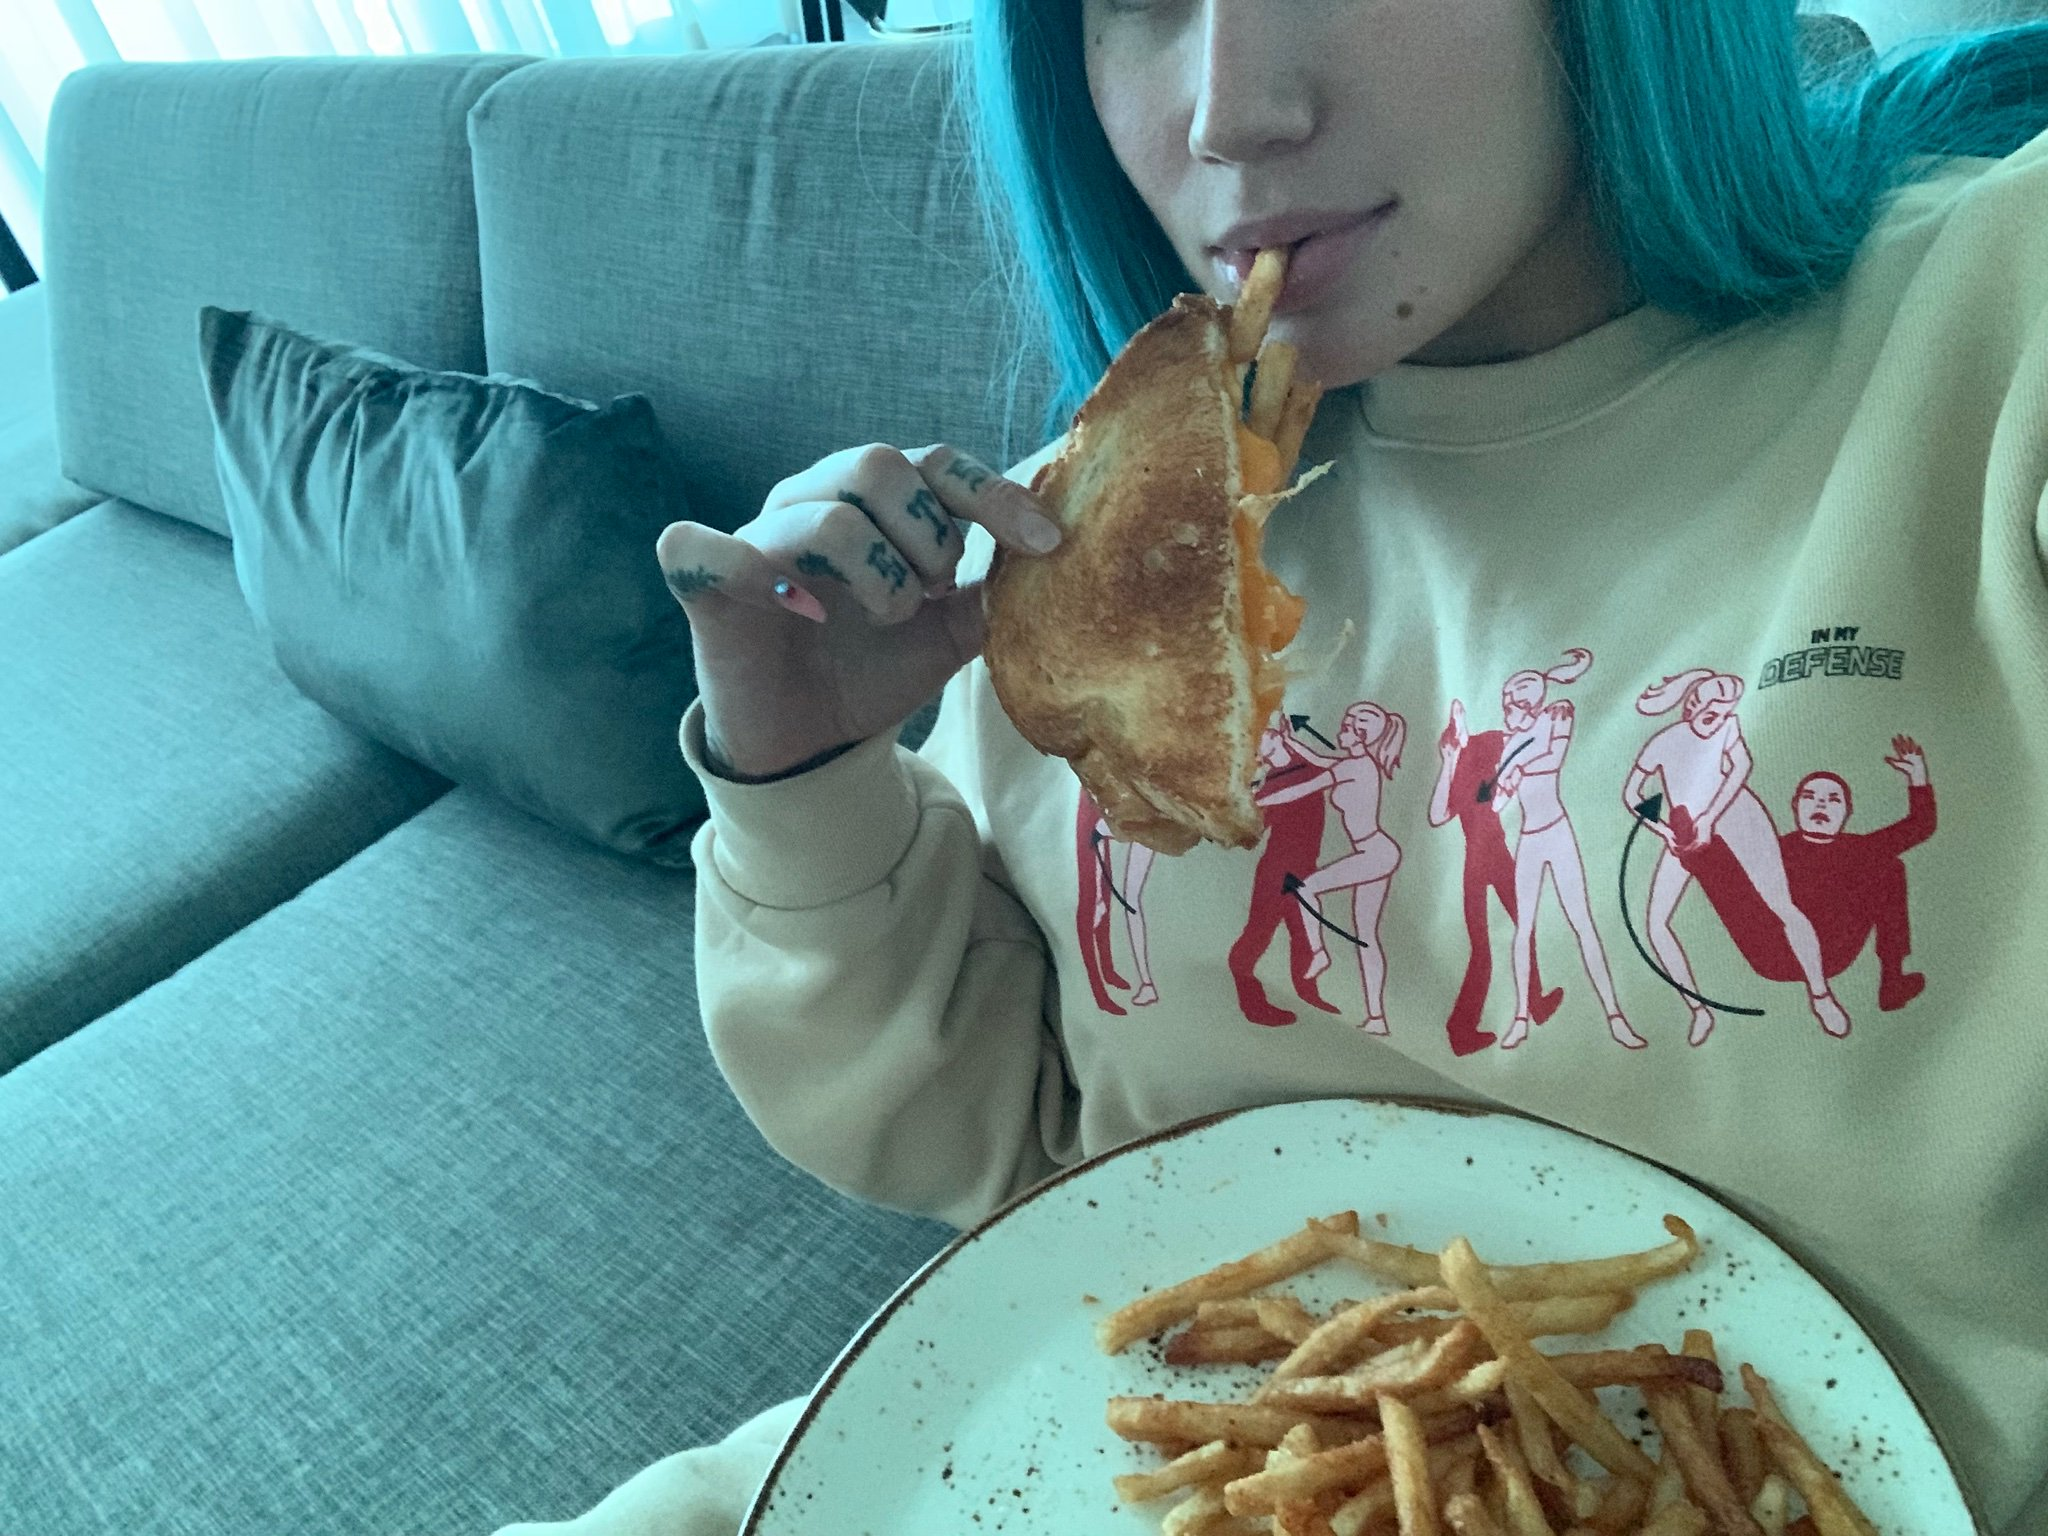 Iggy Azalea Isn#8217;t Happy About Paying $64 For A Grilled Cheese Sandwich